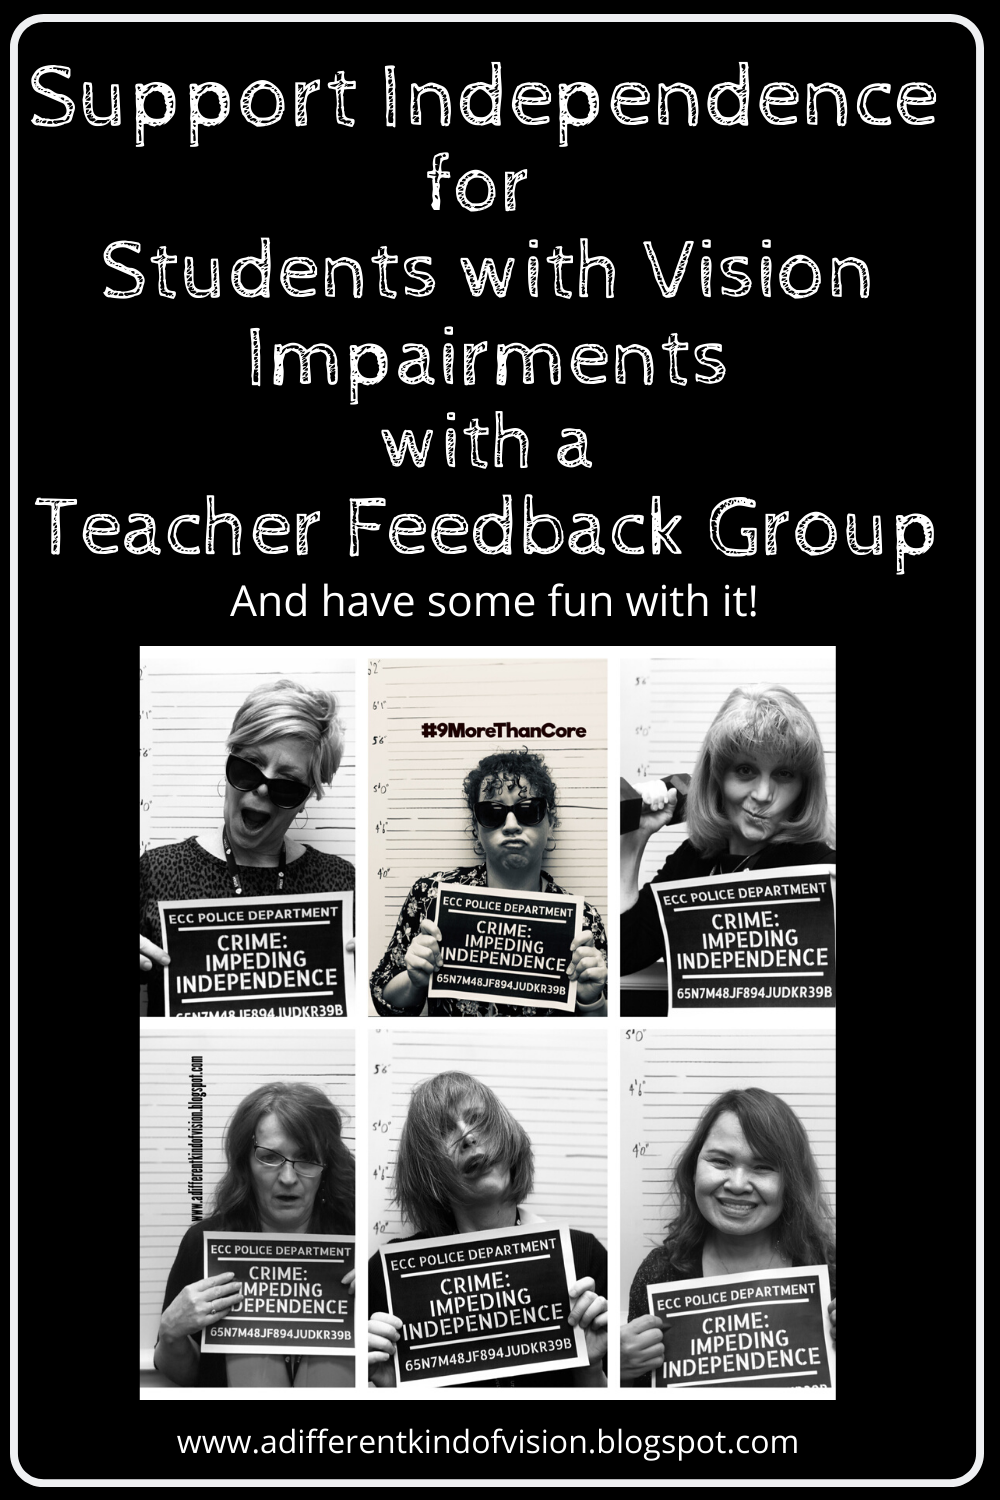 Graphic of the title, support independence for students with vision impairments with a teacher feedback group